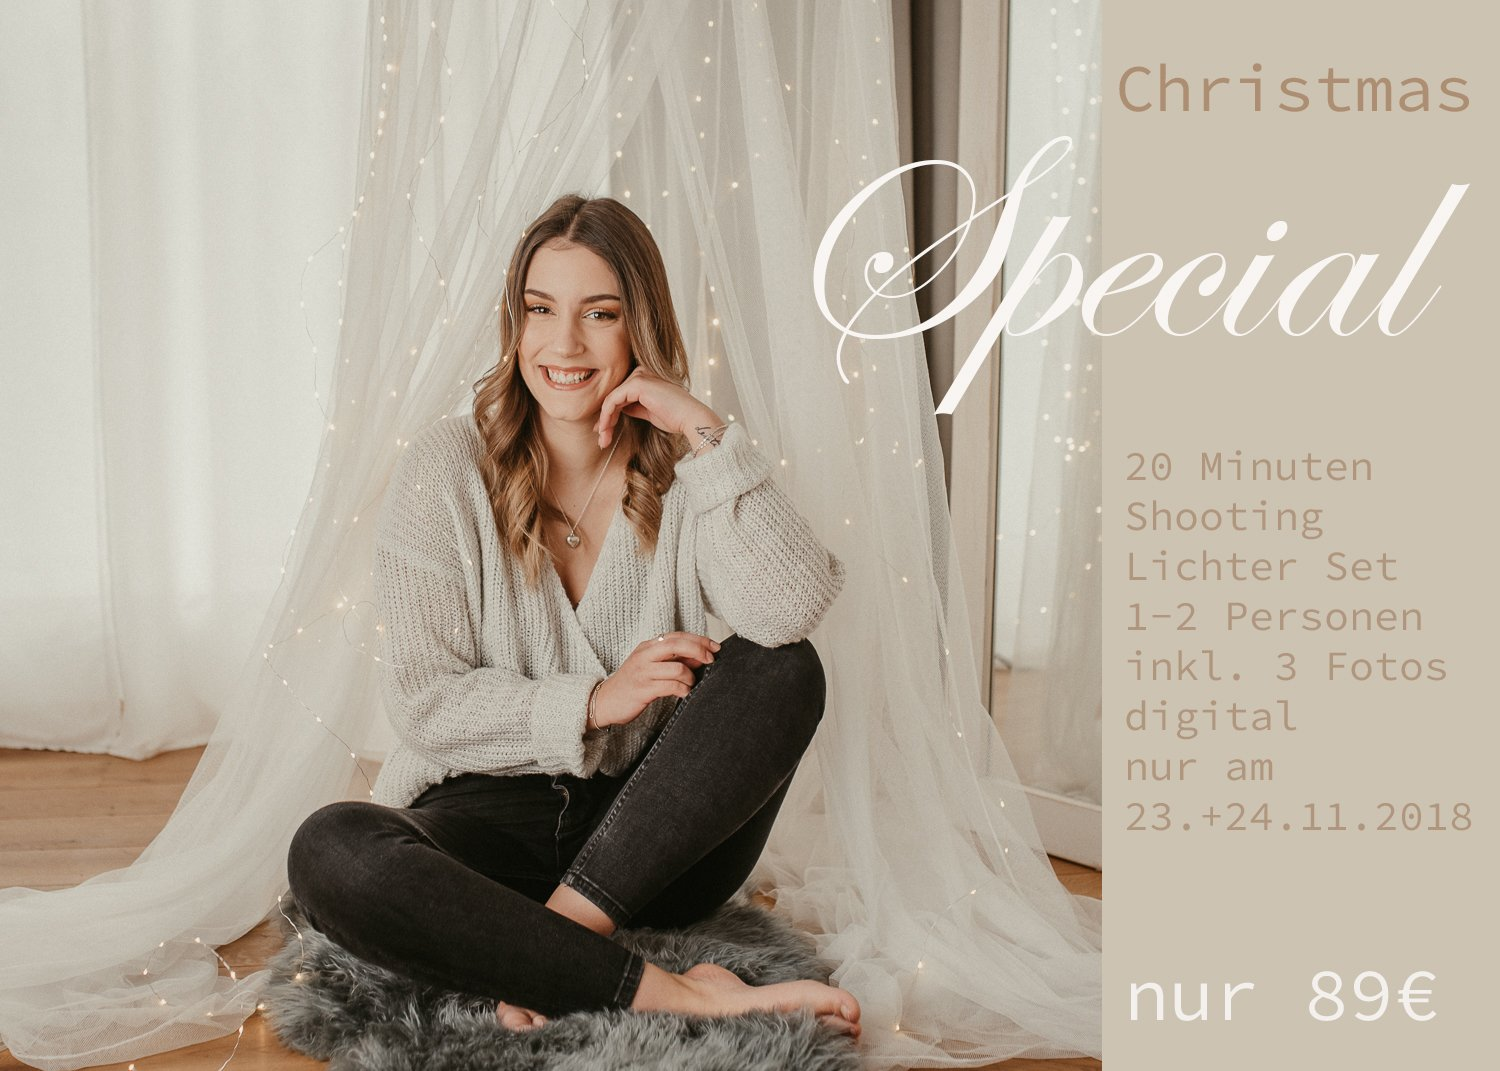 Christmas Special Lichter Aktion Mini Shooting